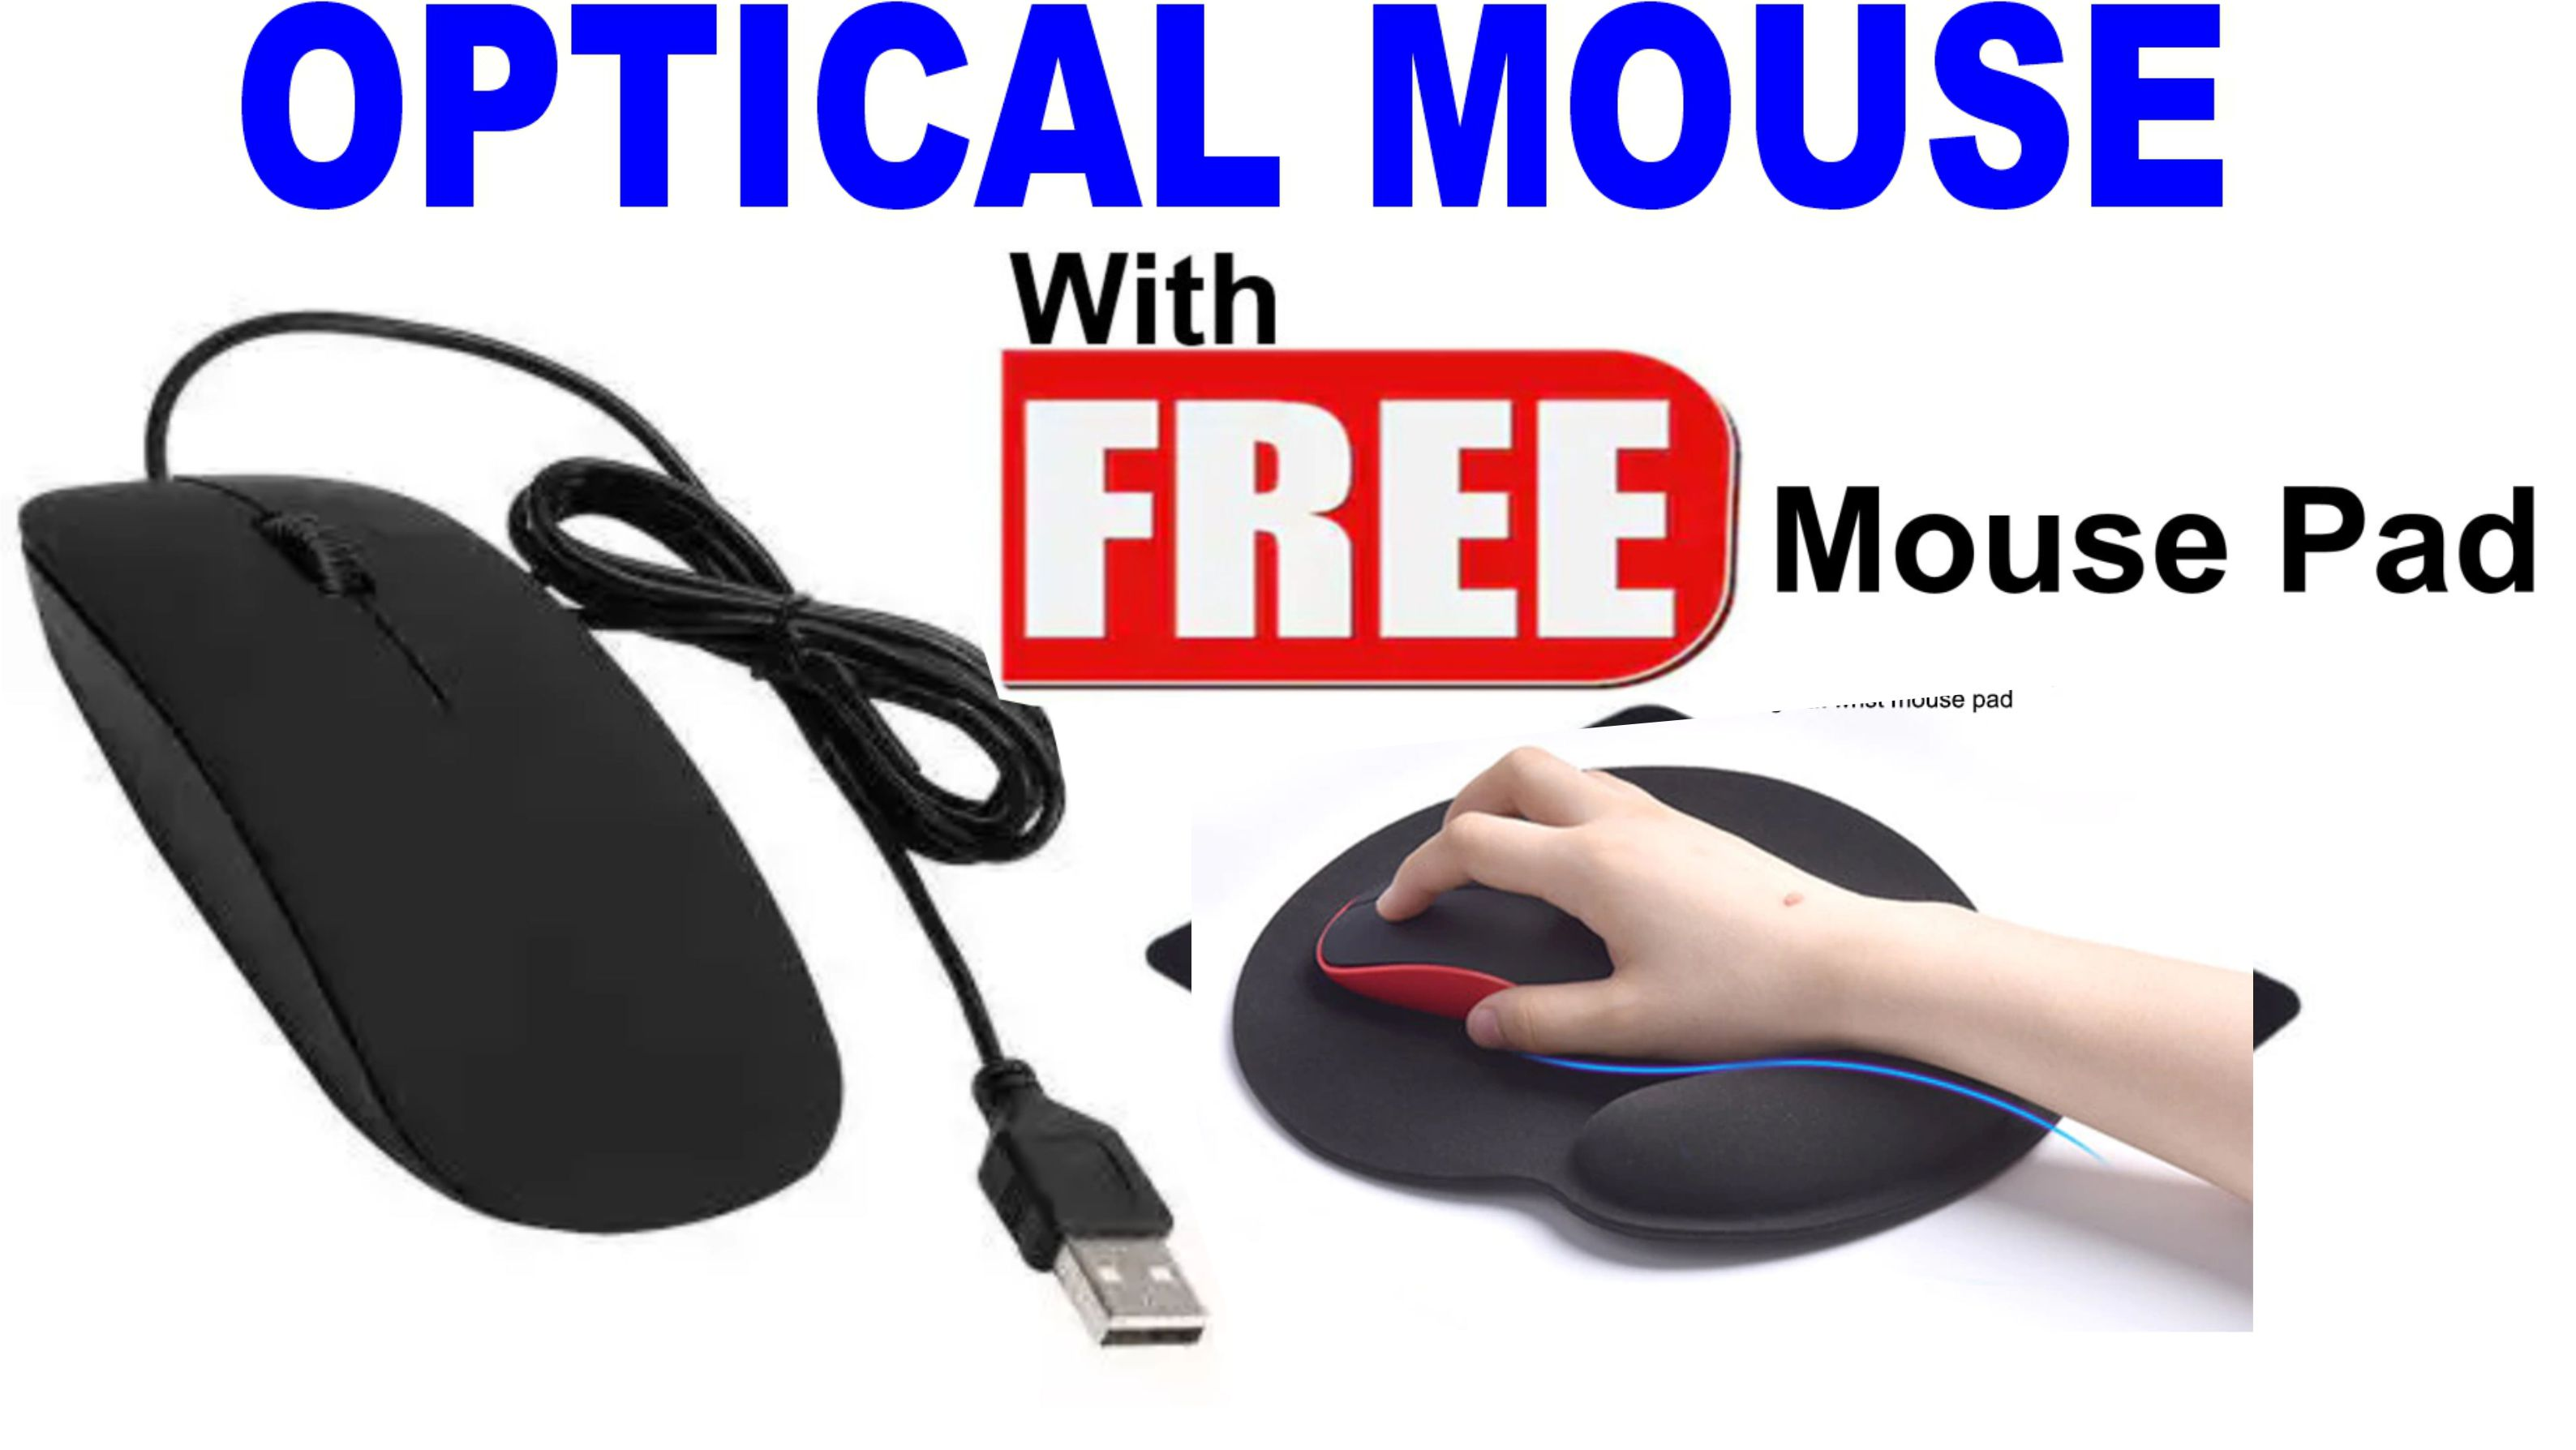 Optical Mouse with Free Mouse Pad for Computer Laptop Mobile LED TV and DVR